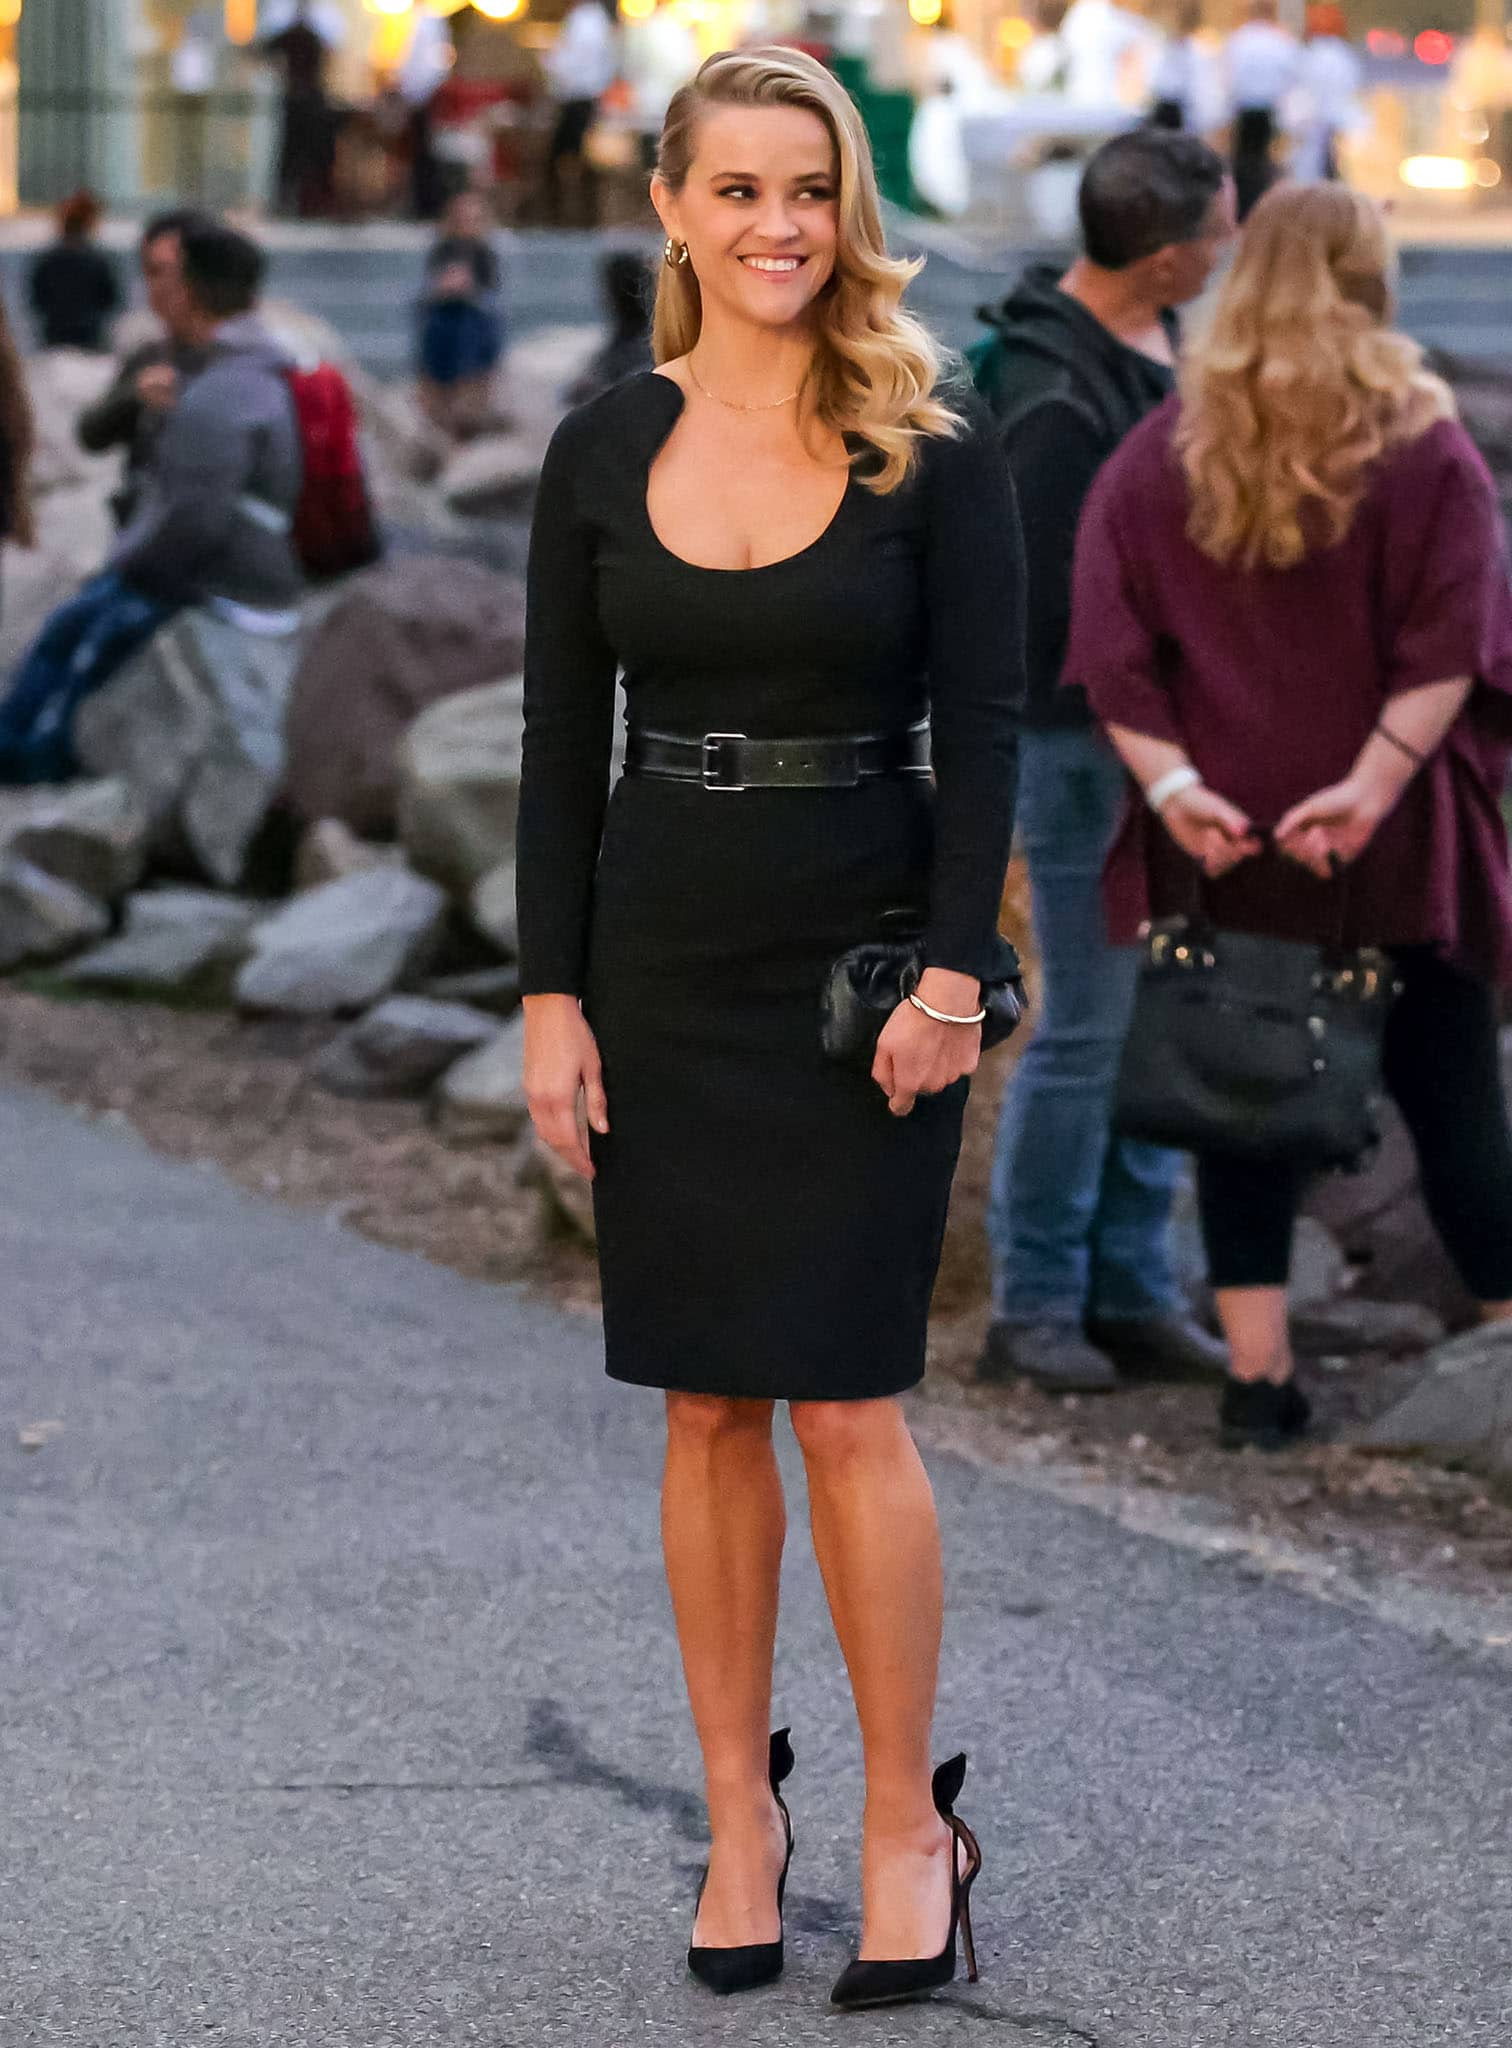 Reese Witherspoon at the movie set of her new rom-com movie Your Place or Mine in New York City on October 6, 2021